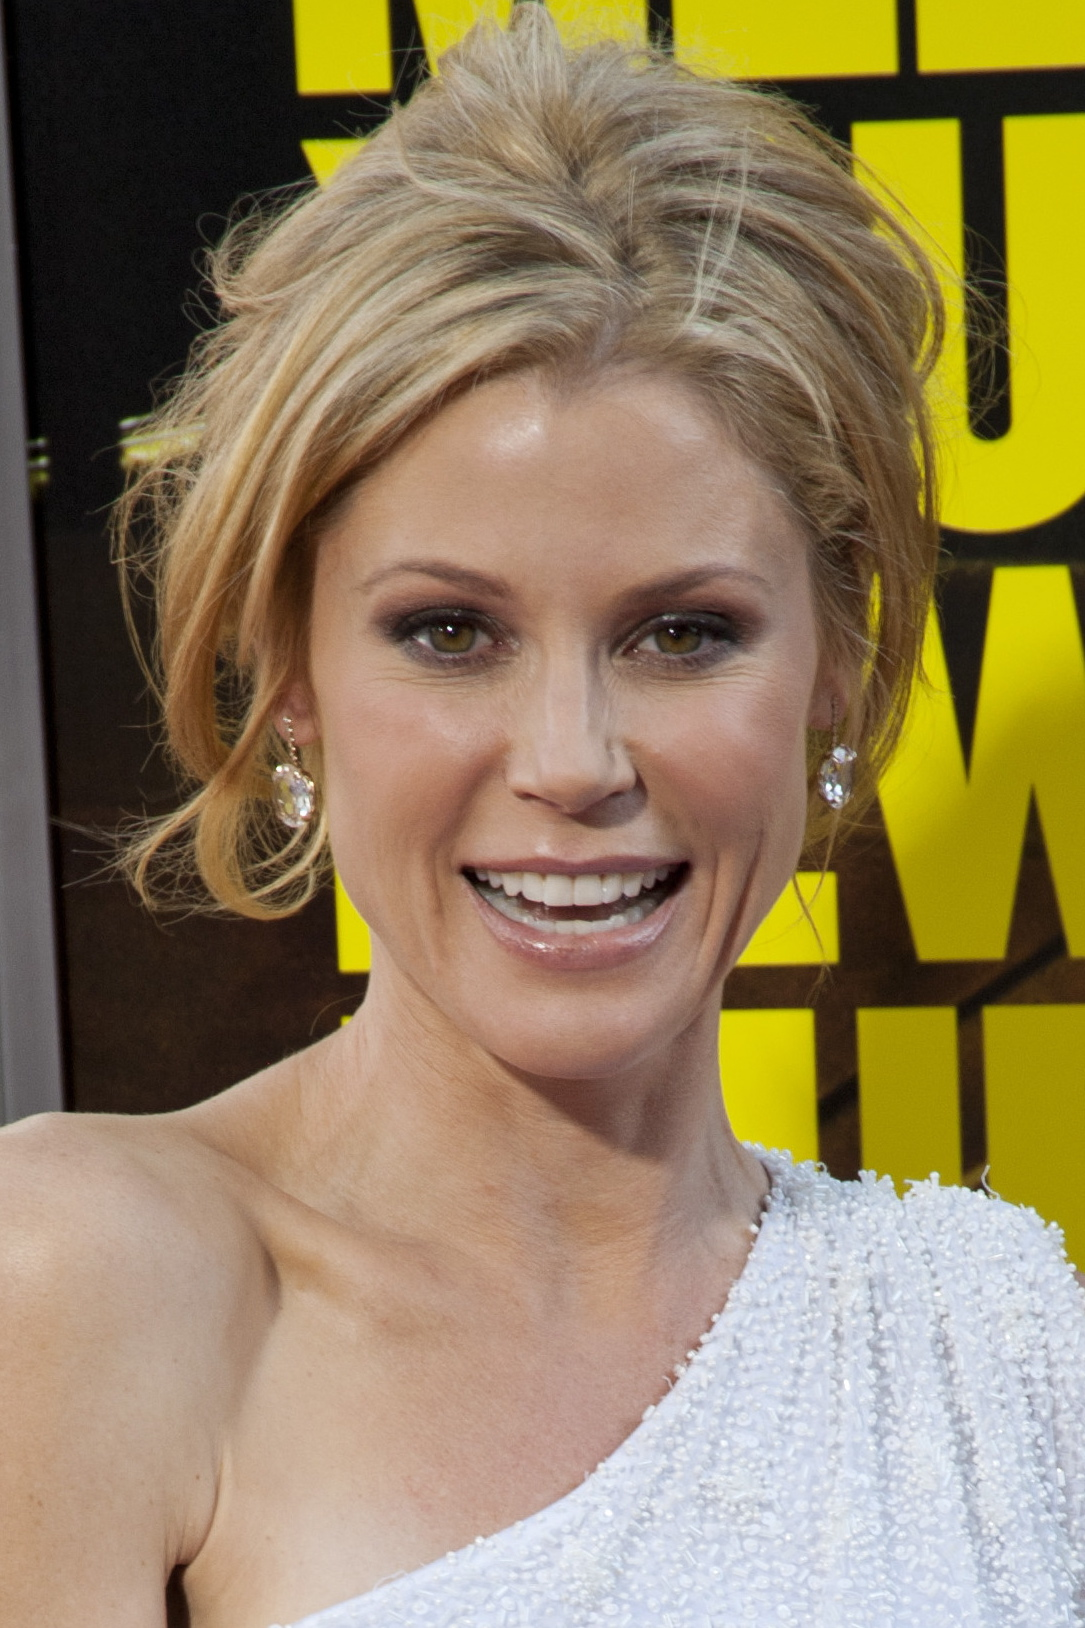 Two-time Emmy winner Julie Bowen will be the commencement speaker at Greenwich Academy's Class of 2013 graduation ceremony.